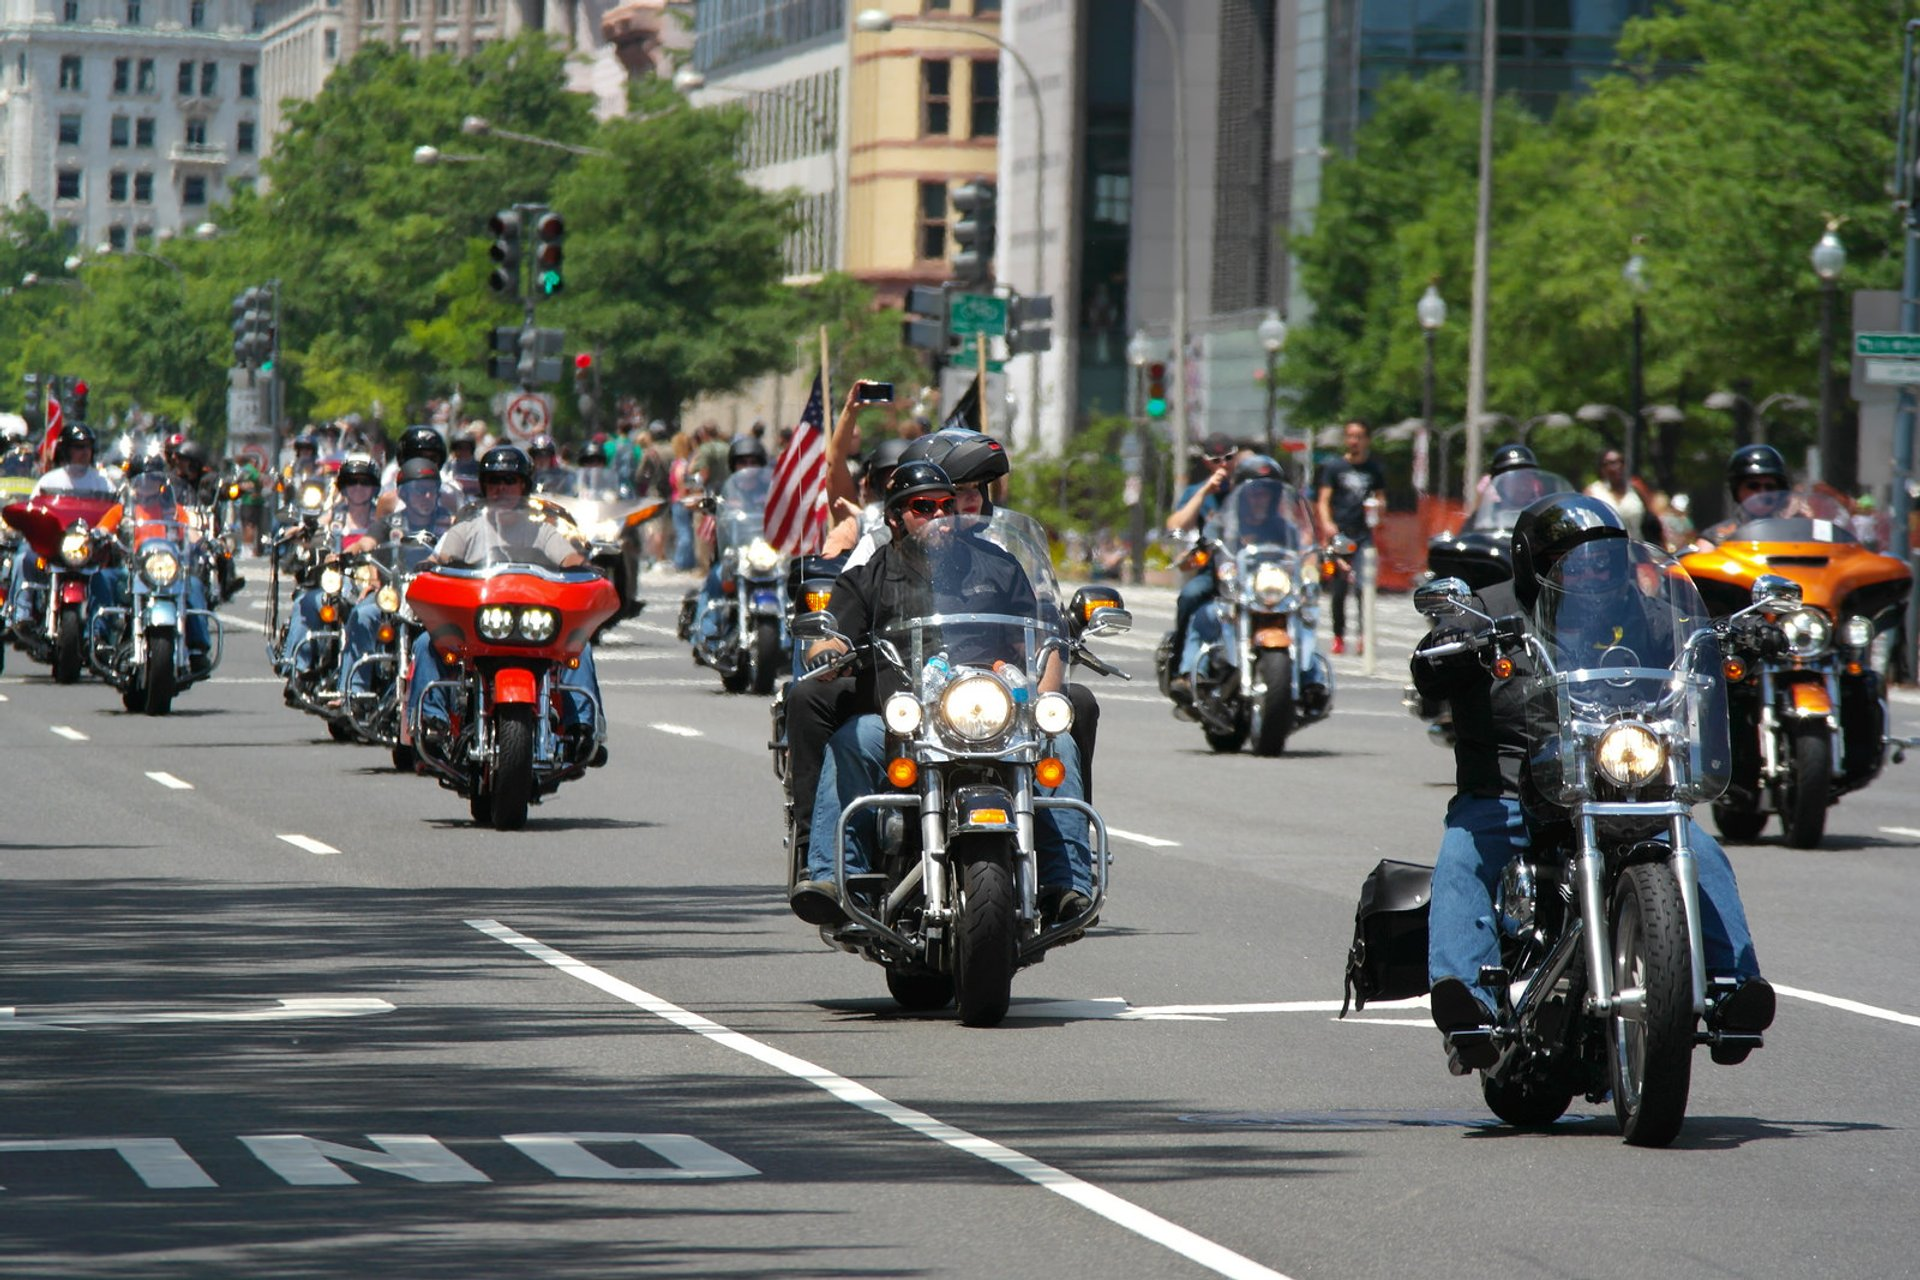 Rolling Thunder Run in Washington, D.C. - Best Season 2020